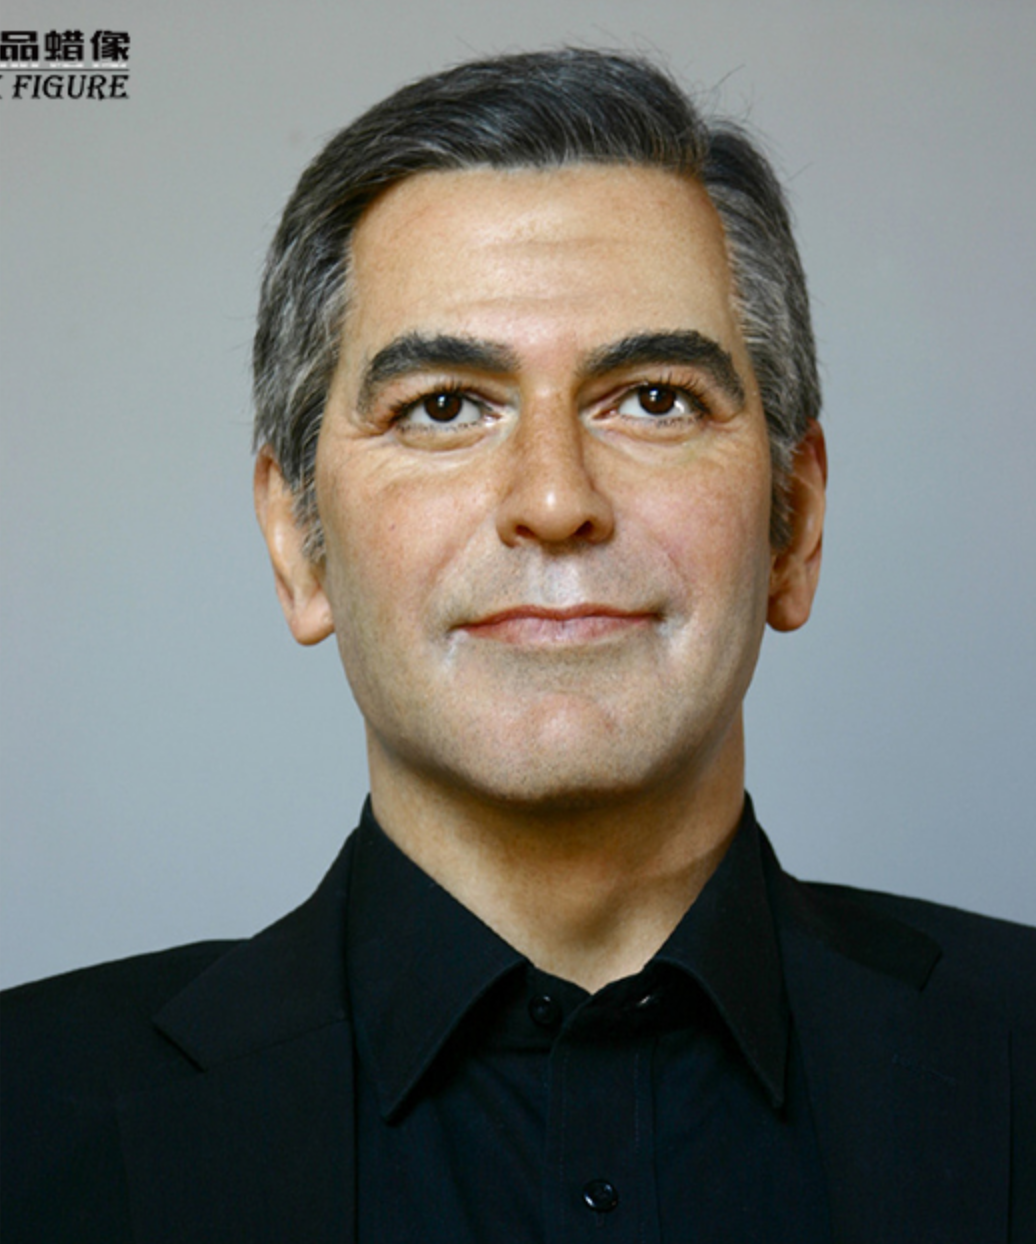 George Clooney Lifesize Cardboard Cutout  Hollywood Superstar Actor